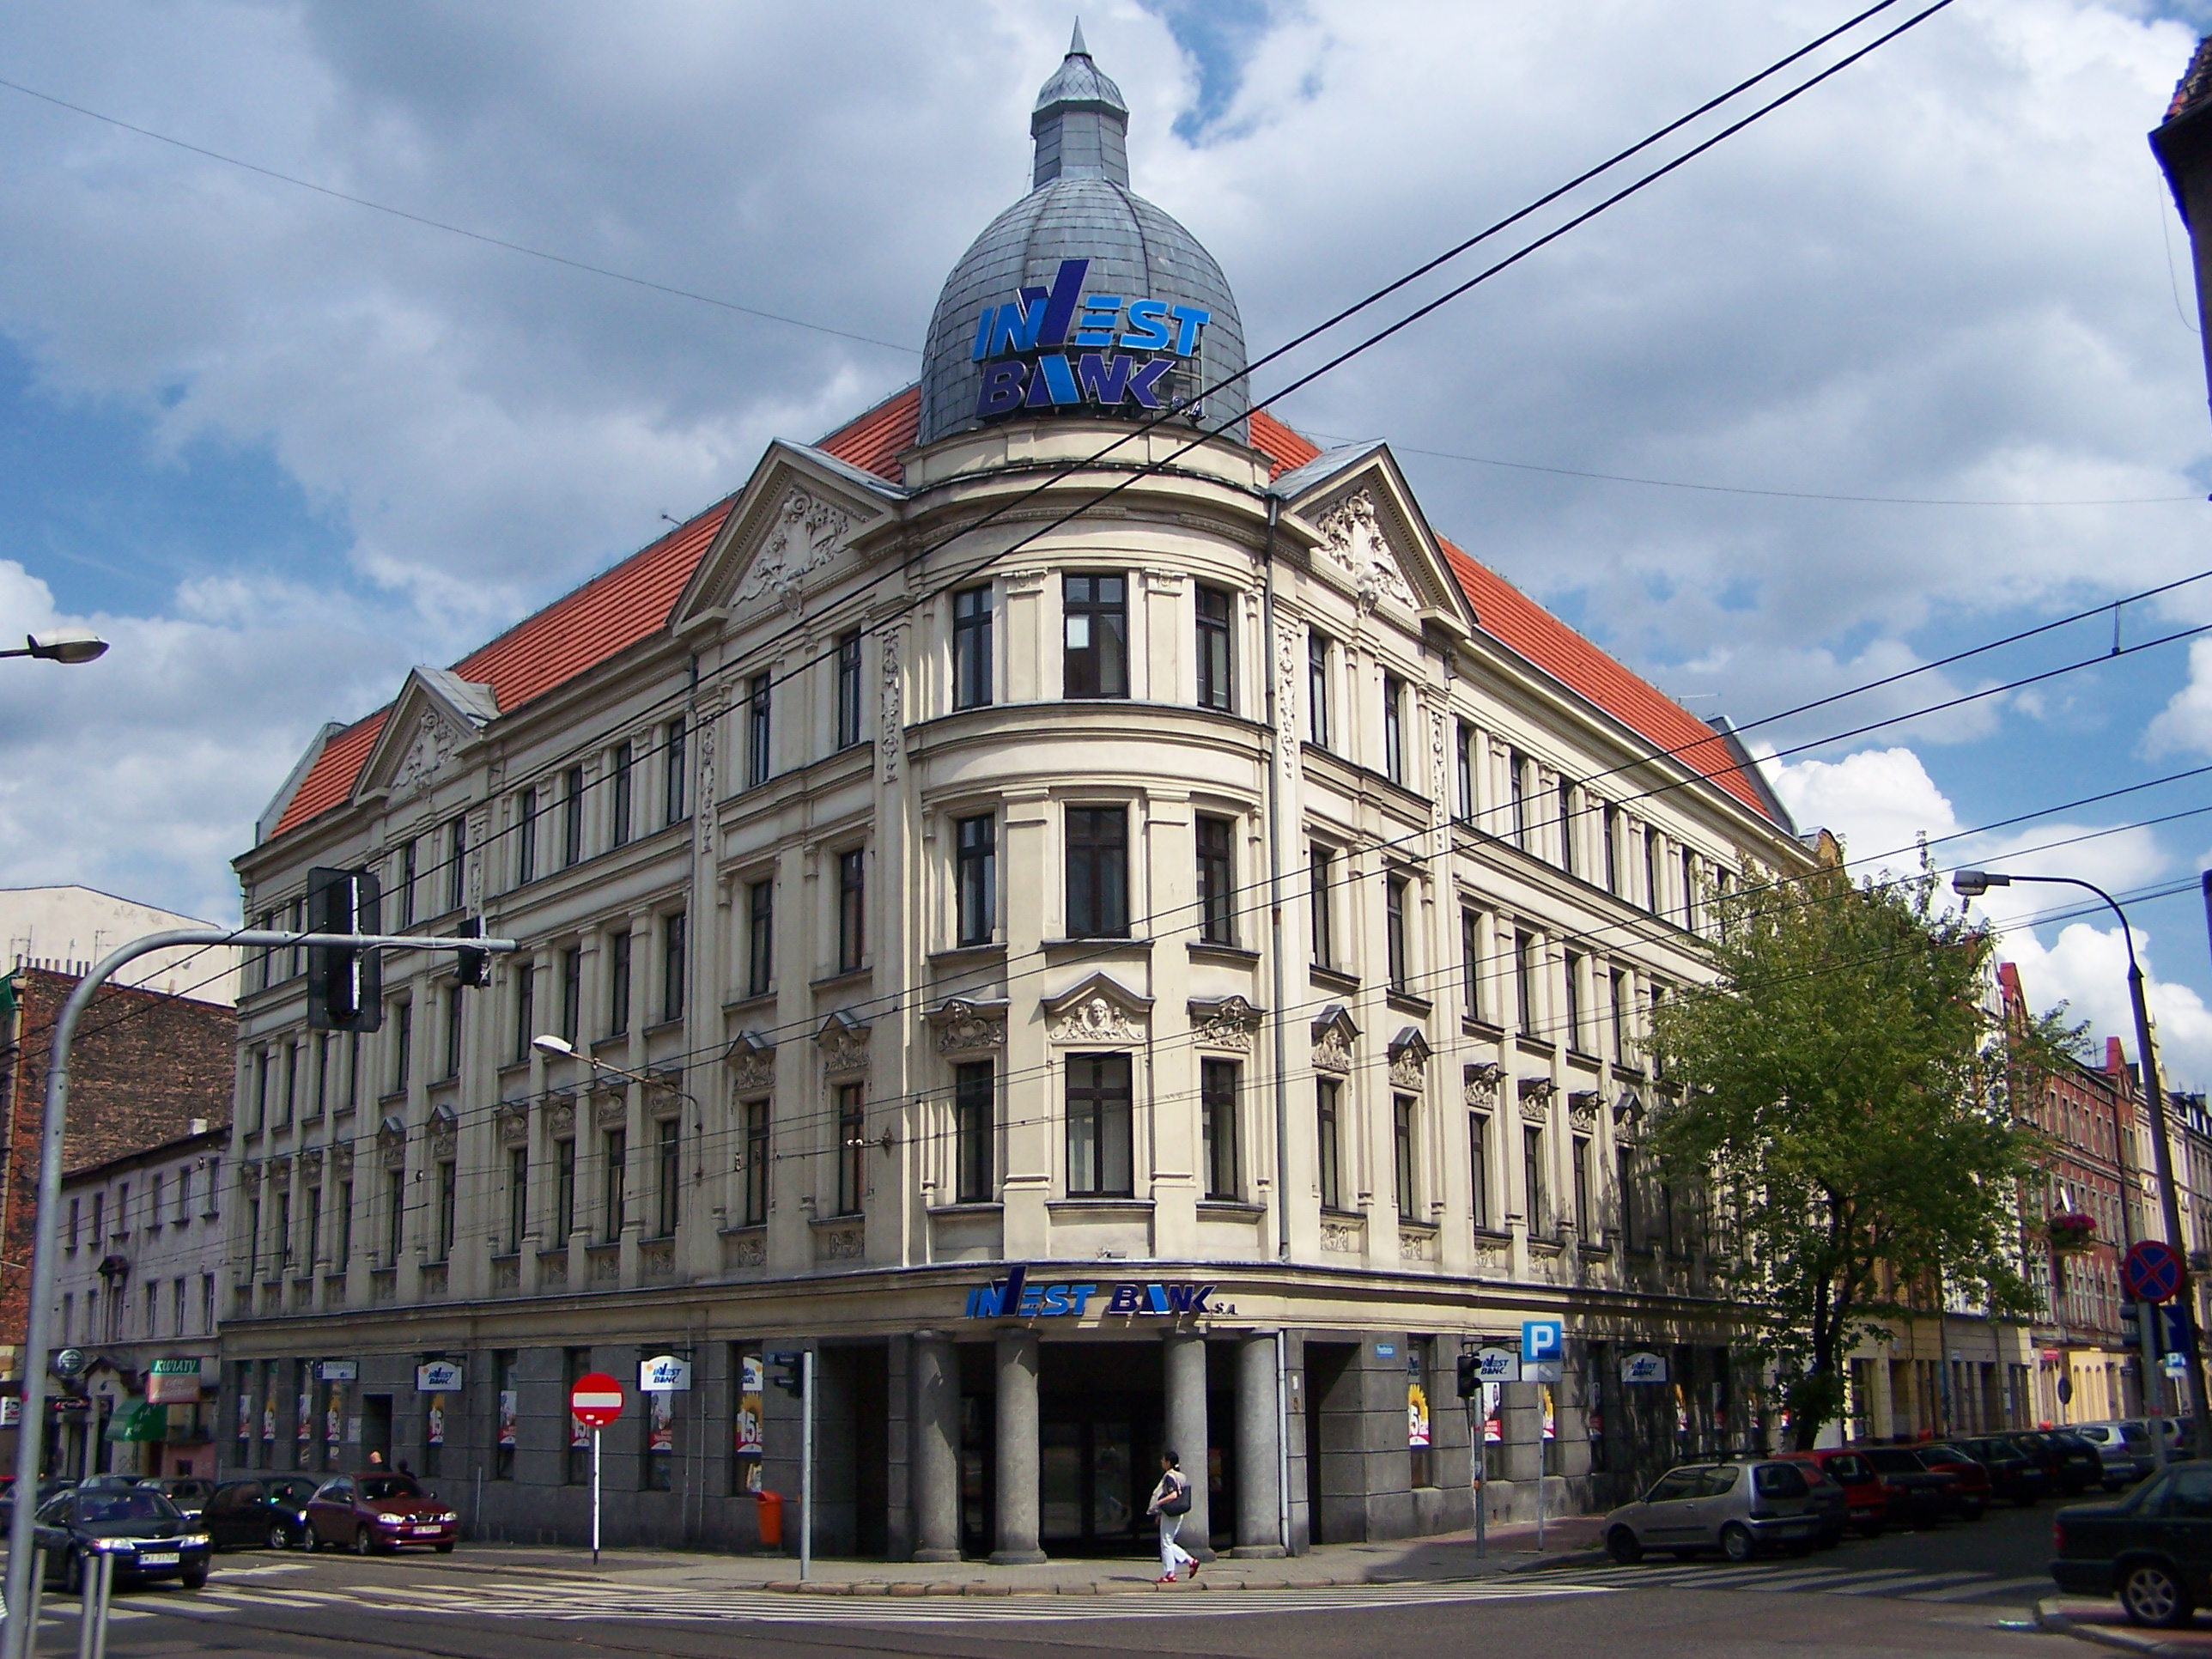 filekatowice ul koa›ciuszki invest bank wikimedia commons